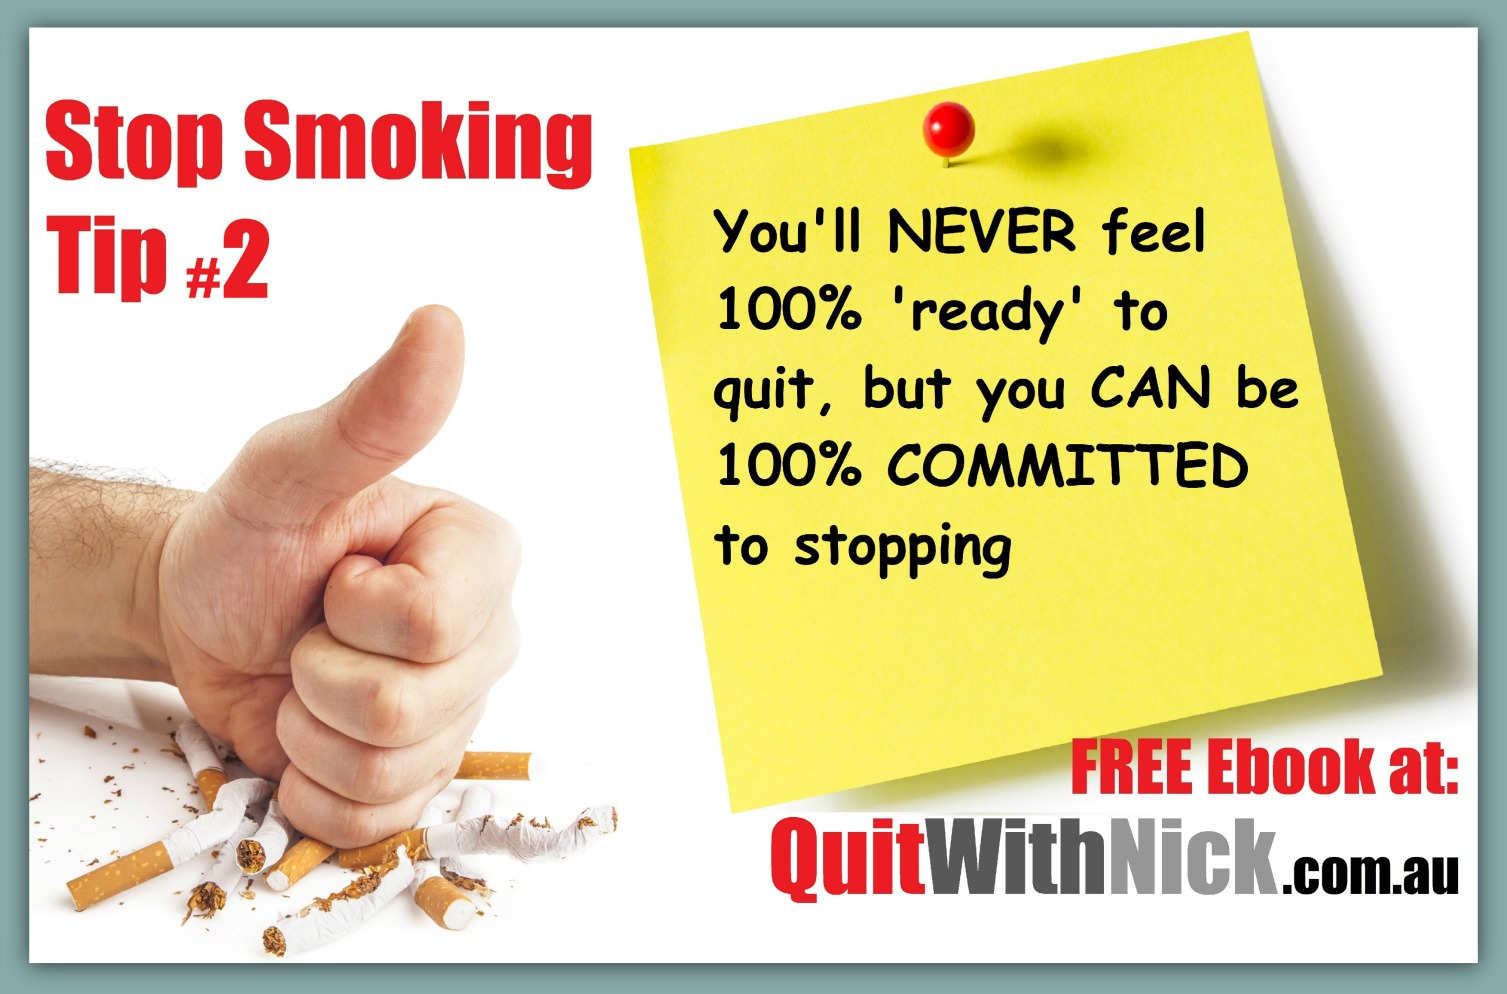 QuitWithNick Stop Smoking Tip #2